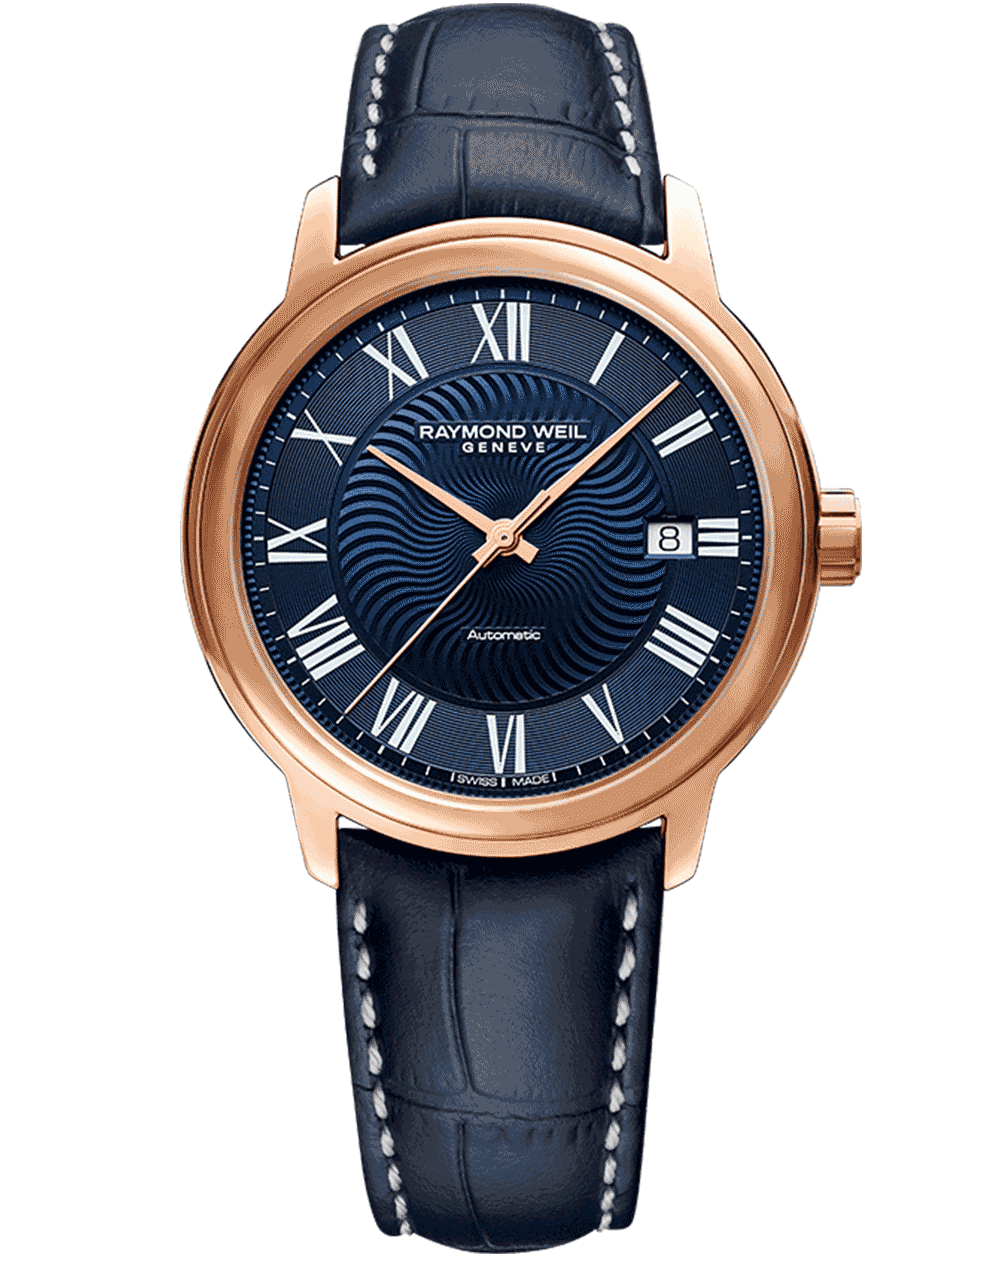 Raymond Weil Geneve Luxury Maestro Watch Rose Gold